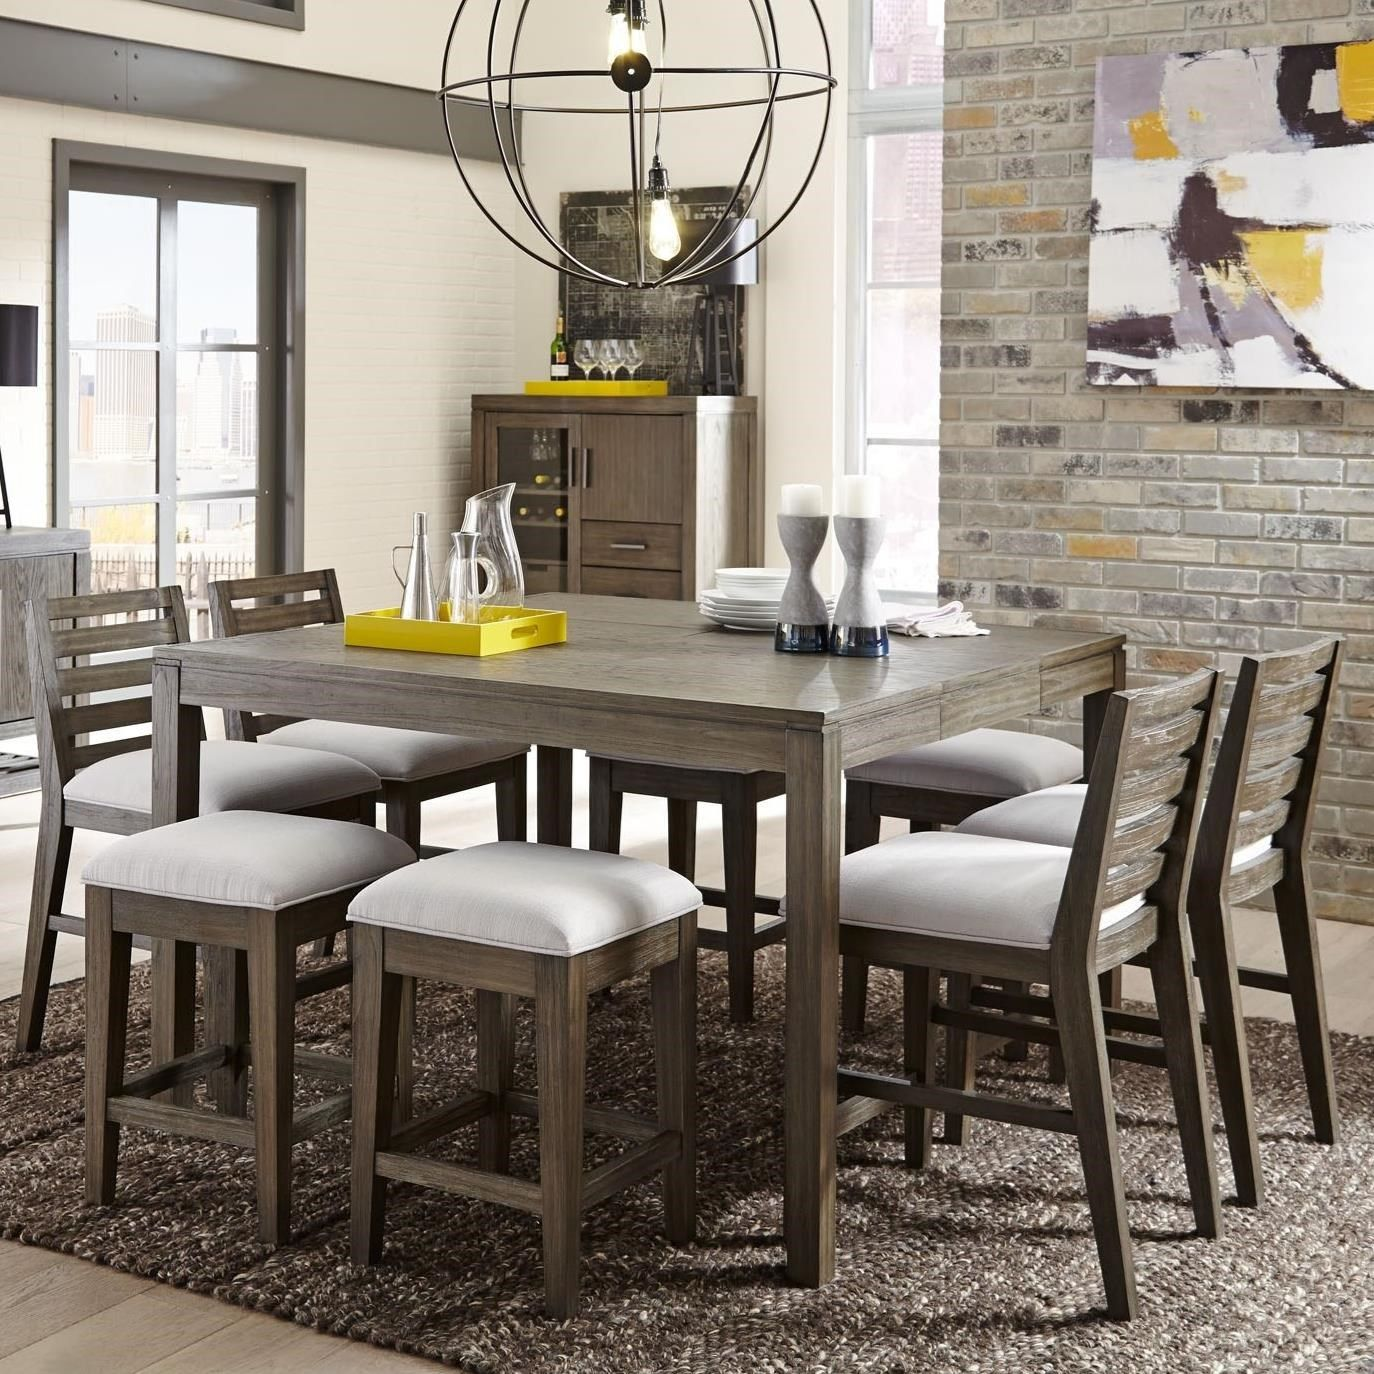 Bravo 9 Piece Counter Height Dining Set By Casana